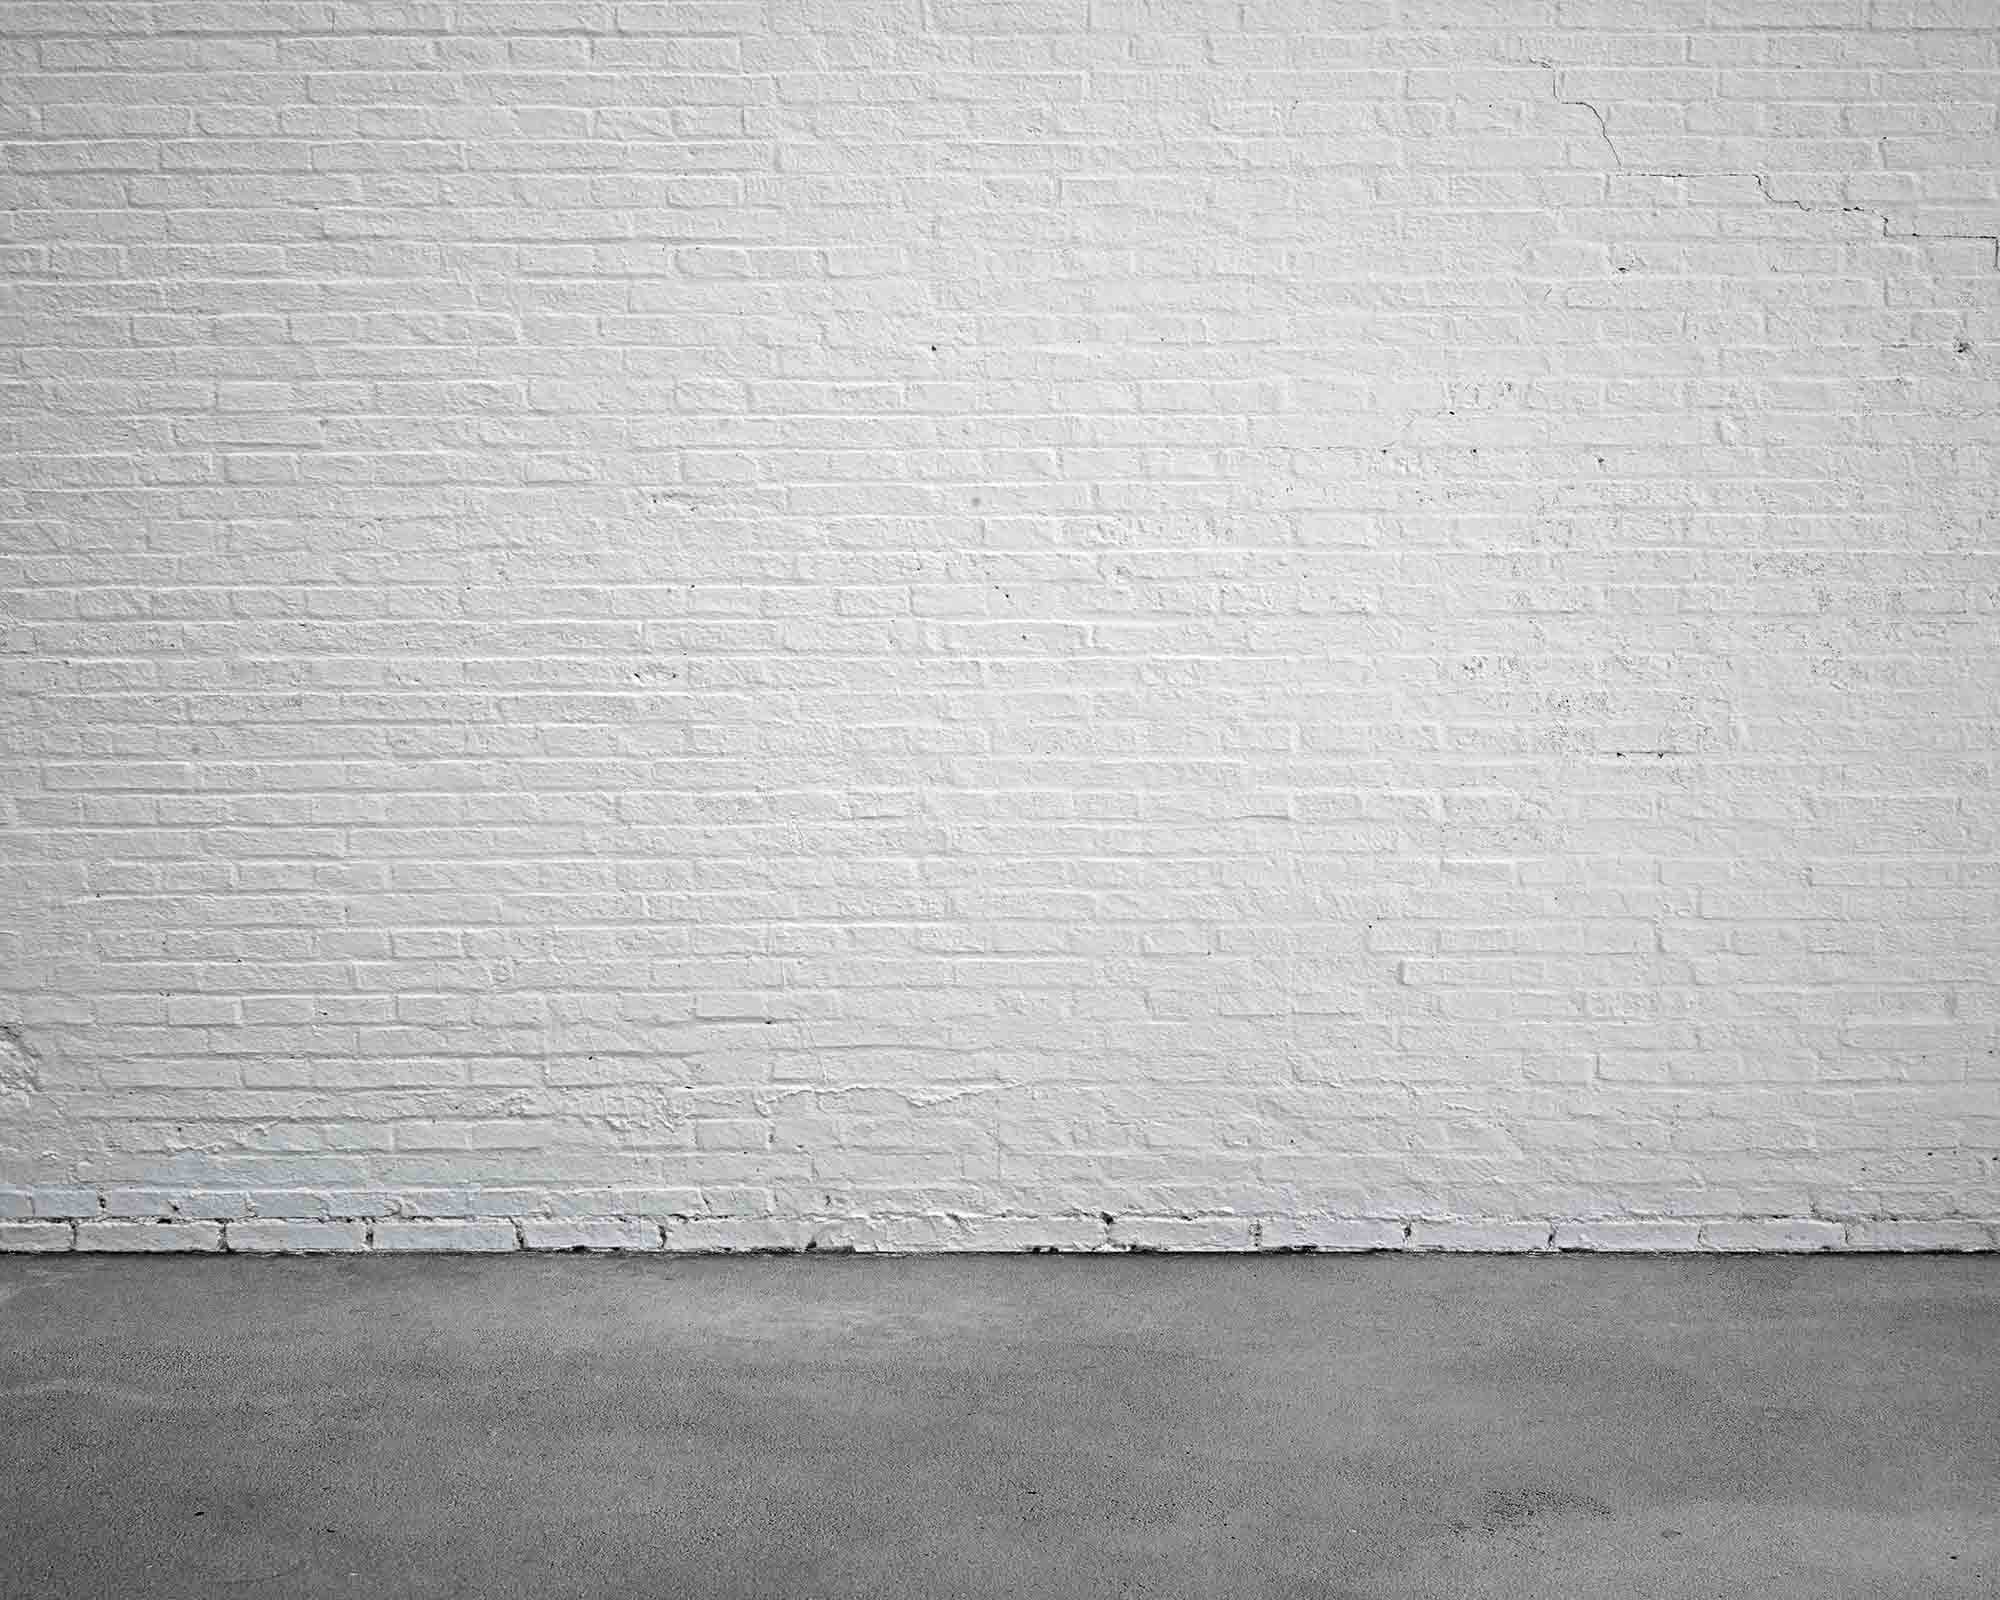 White Stucco Brick Wall With Cement Floor Backdrop For